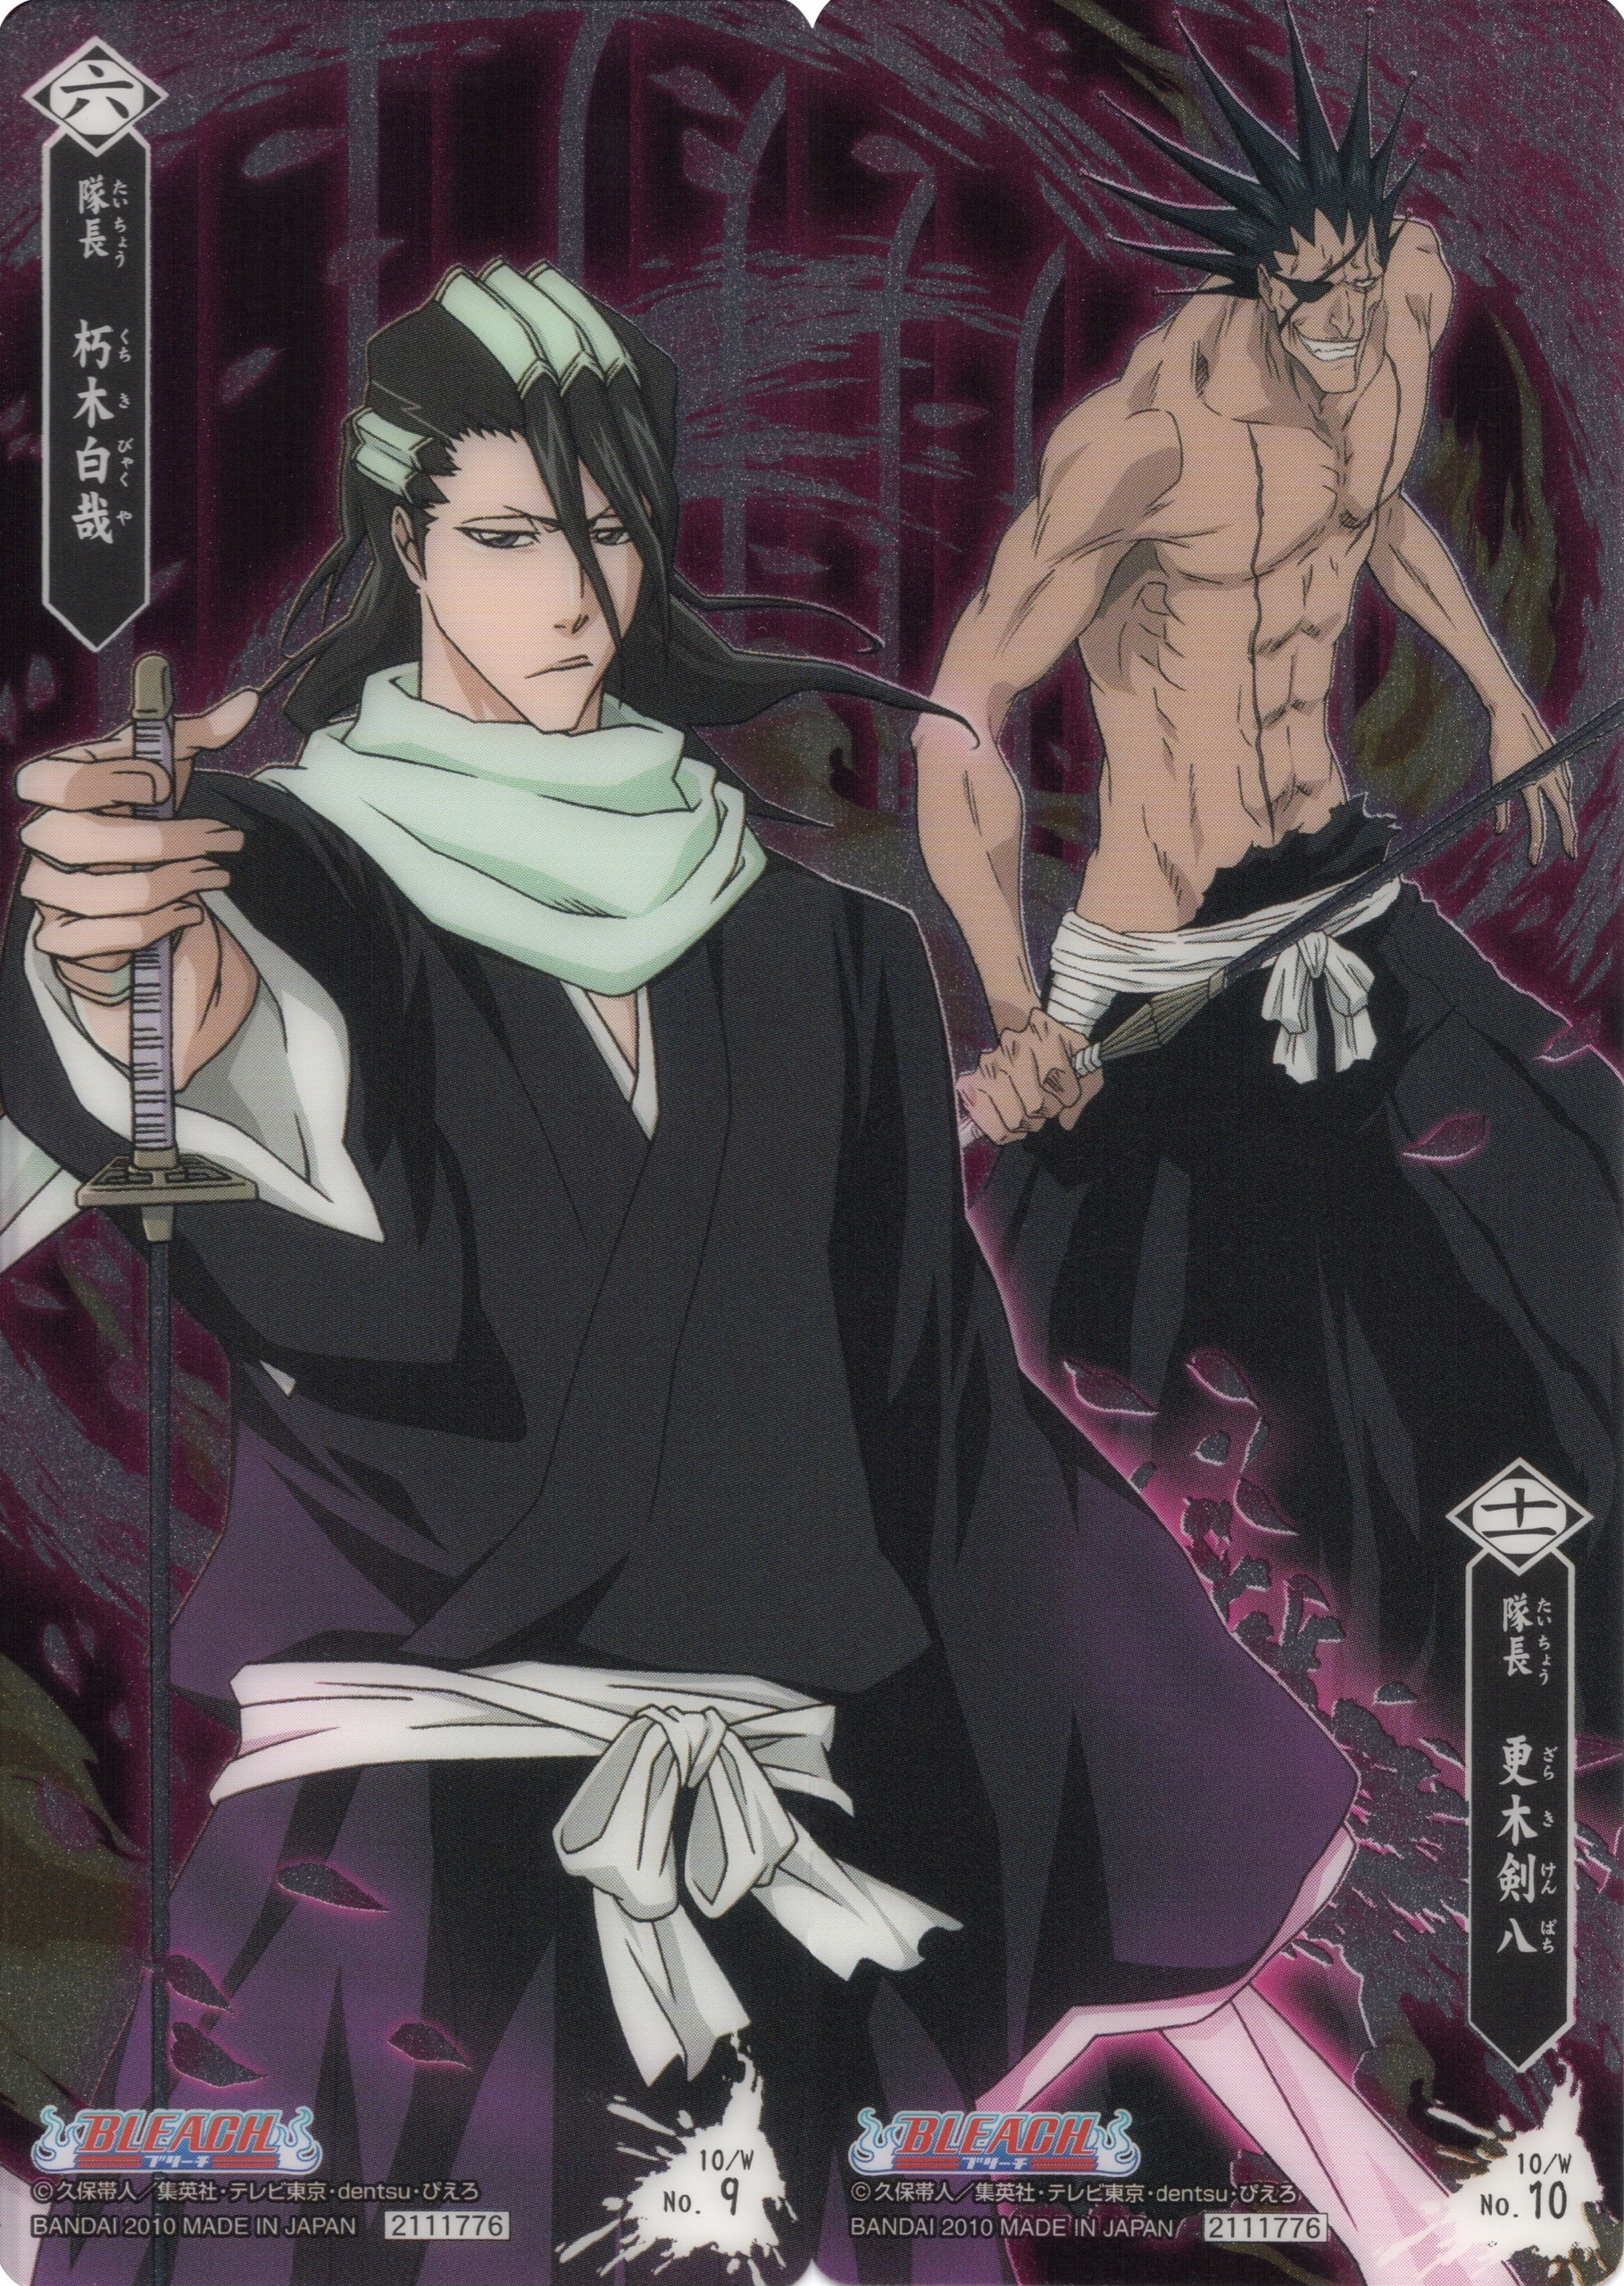 Byakuya and Kenpachi